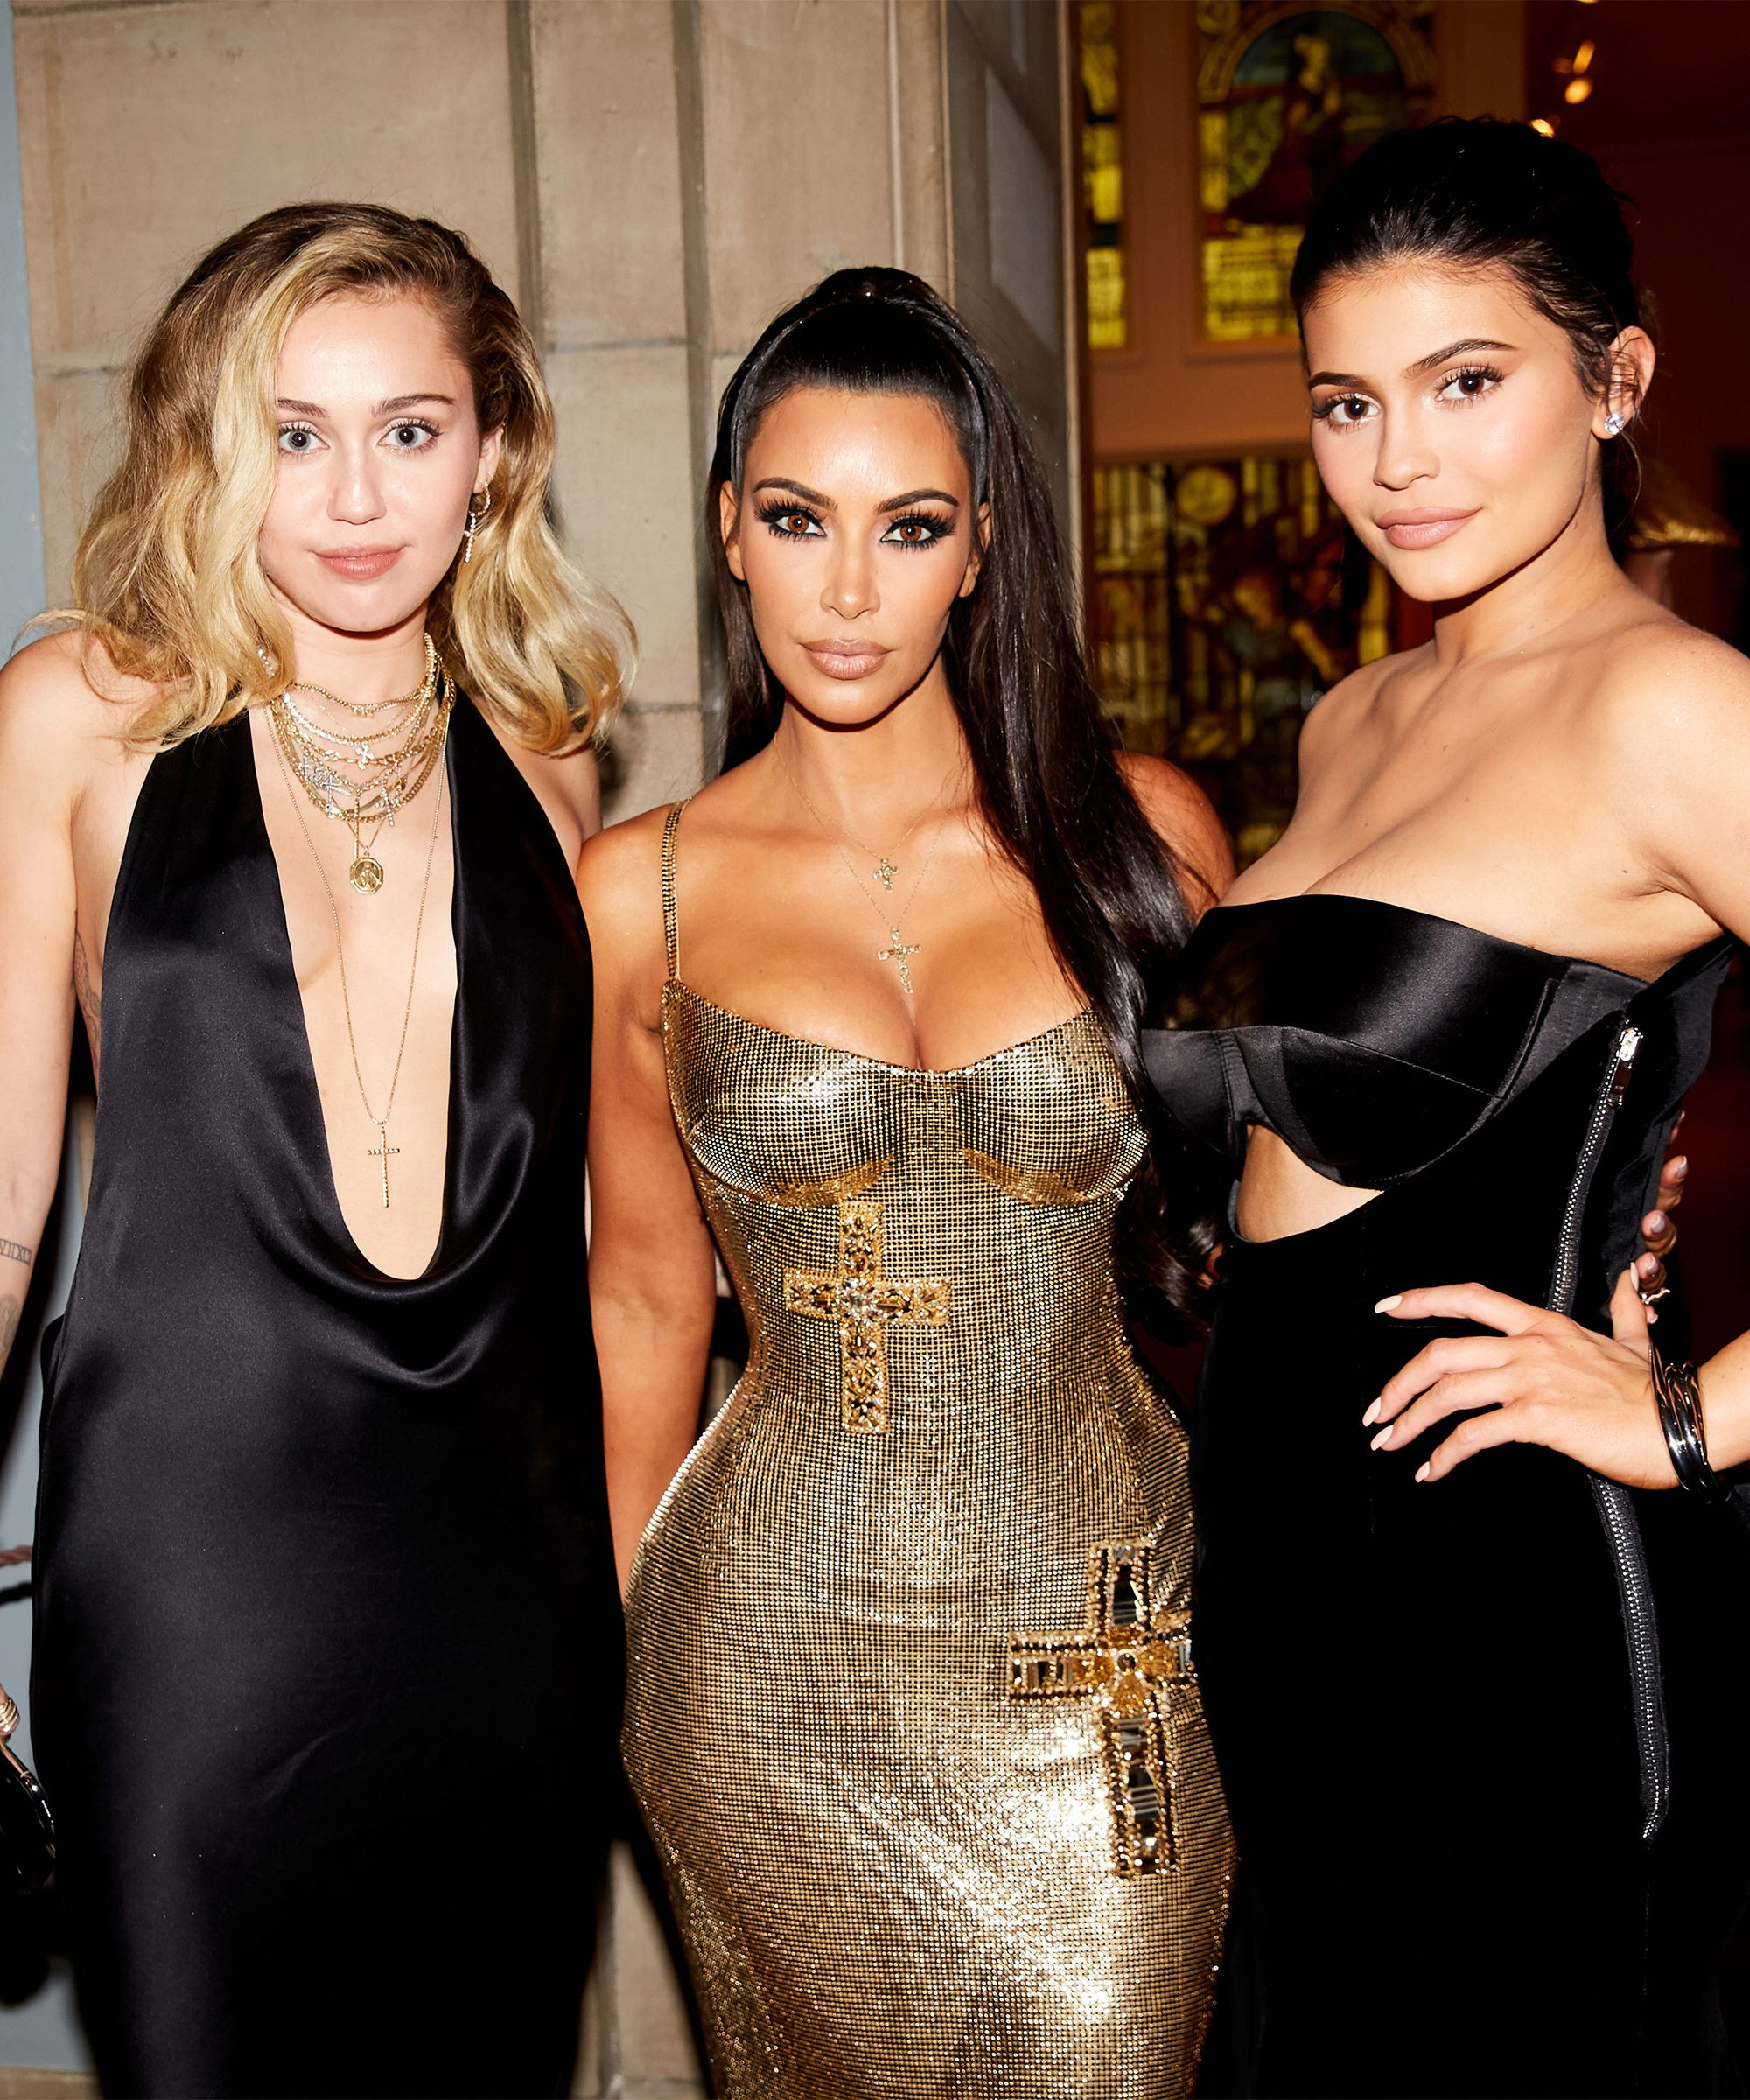 Kim Kardashian & Kylie Jenner's Perfume Is About To Be All Over Instagram